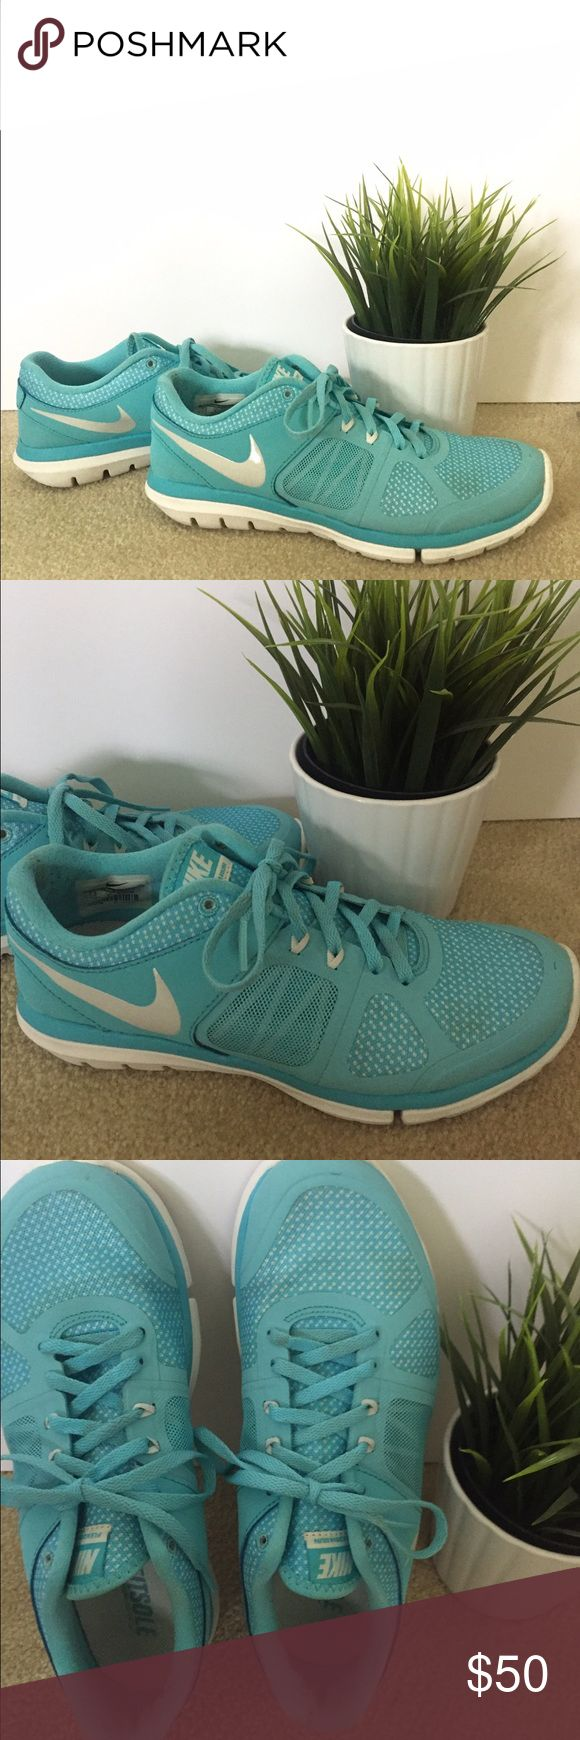 Tiffany blue Nike flex run size 7.5 Tiffany blue and white Nike flex run 2014 size 7.5 worn a handful of times but some light staining throughout hardly noticeable when worn very cute pair for working out or to wear casually got a lot of compliments on these Nike Shoes Athletic Shoes